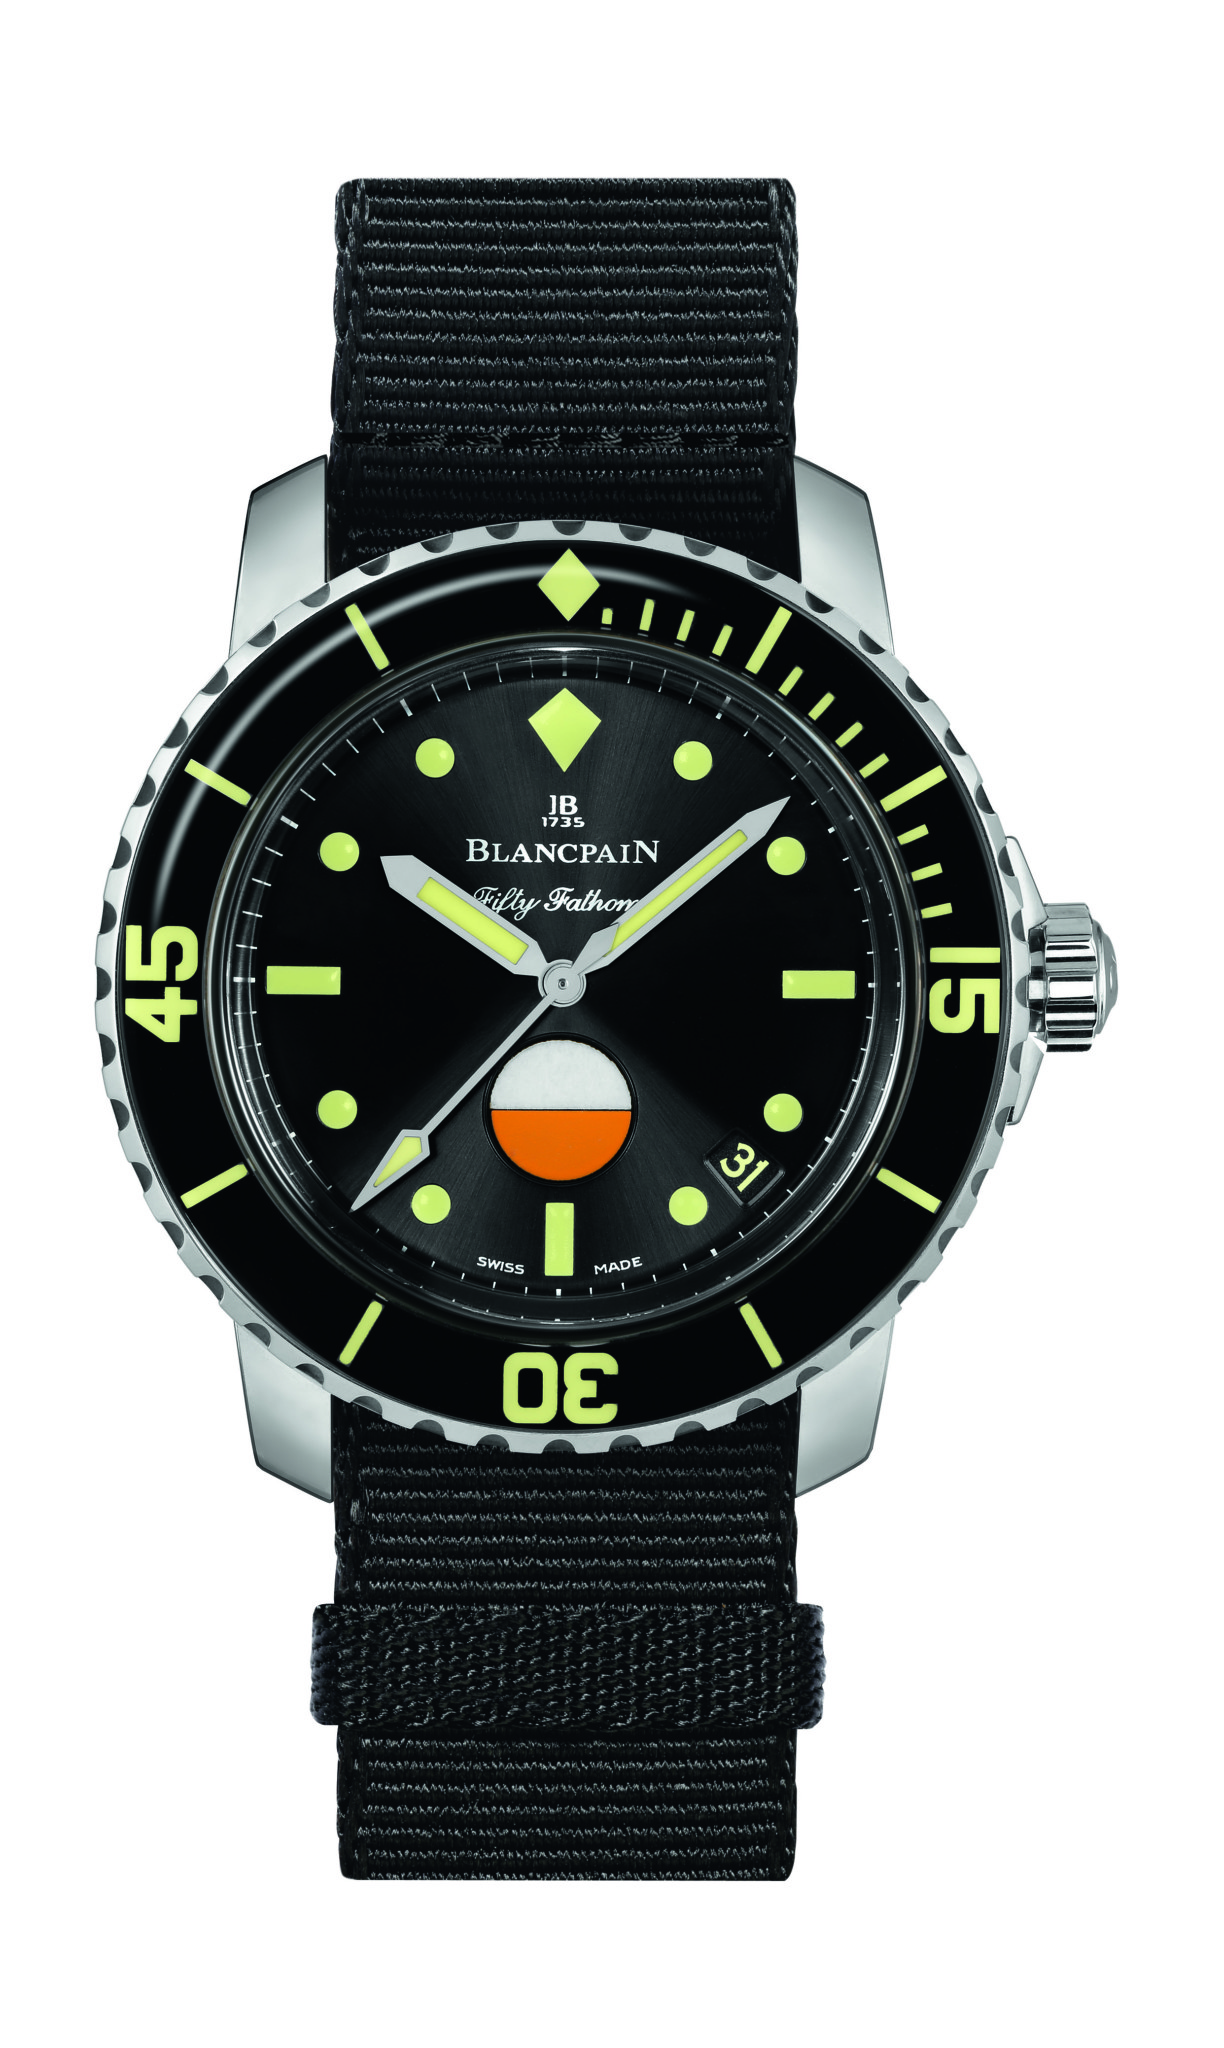 blancpain_onlywatch_face